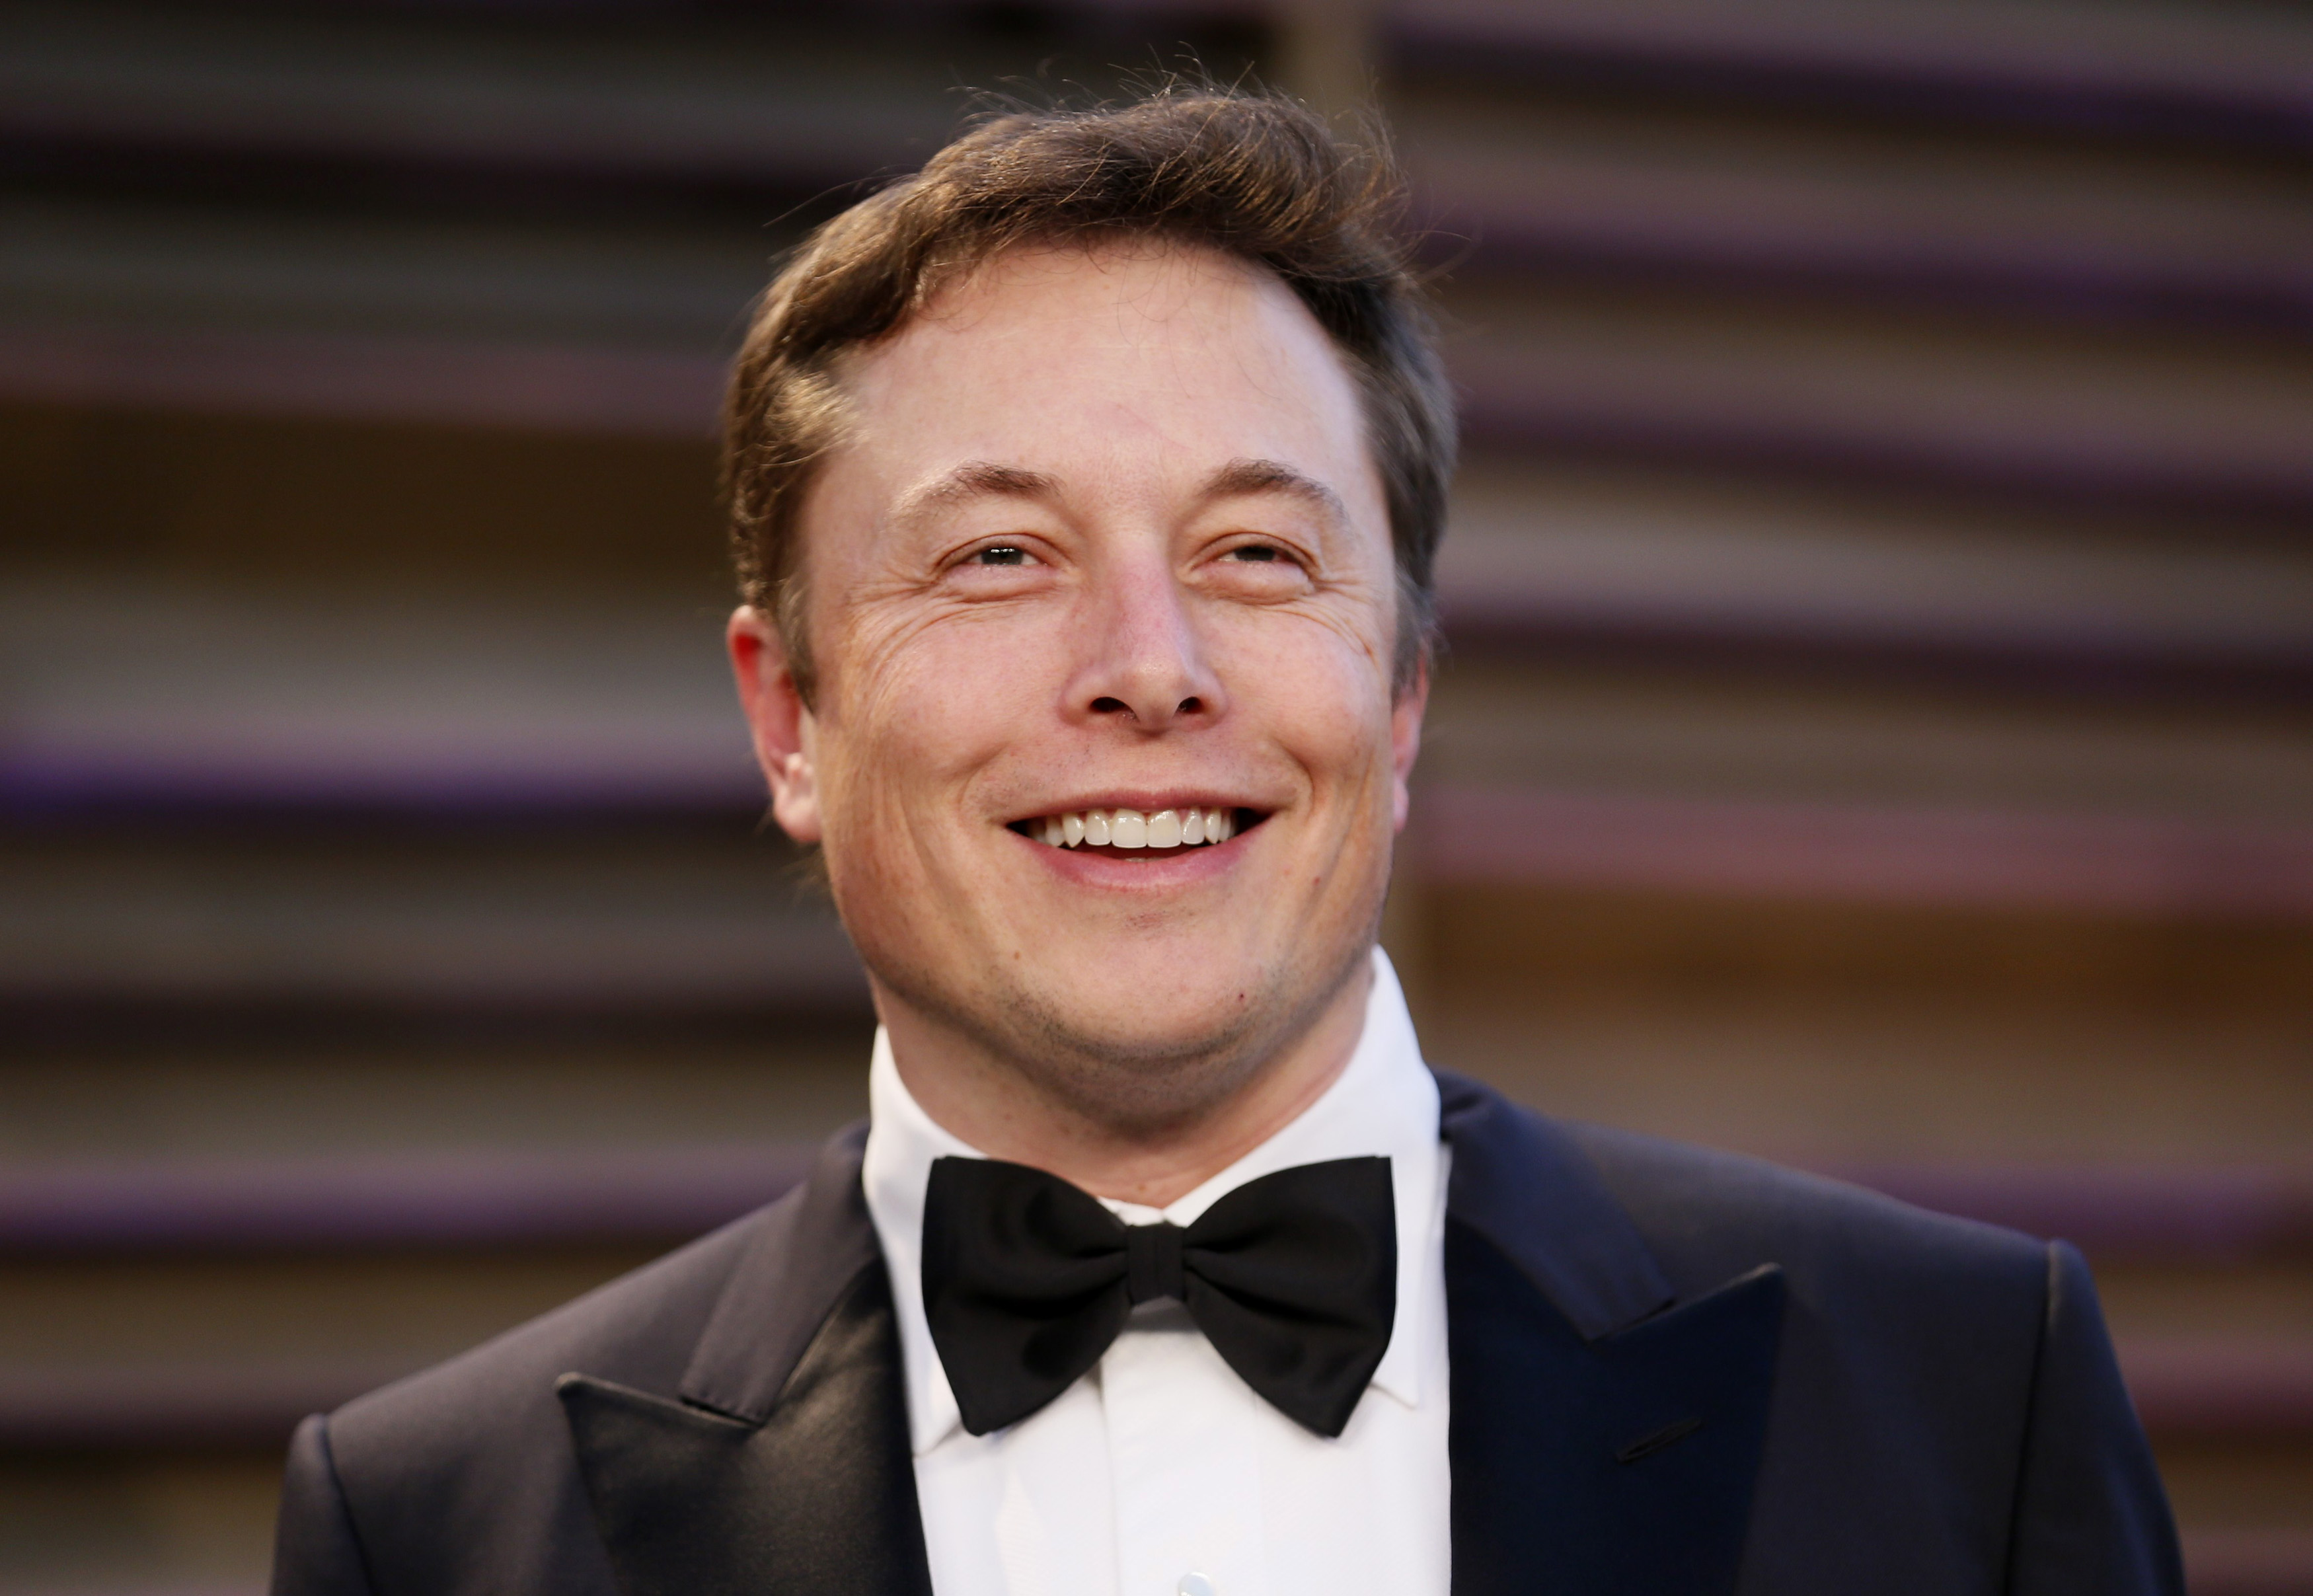 Chief Executive of SpaceX and Tesla Motors Elon Musk arrives at the 2014 Vanity Fair Oscars Party in West Hollywood, California March 2, 2014.  REUTERS/Danny Moloshok (UNITED STATES  - Tags: ENTERTAINMENT BUSINESS HEADSHOT)(OSCARS-PARTIES) - RTR3FY5U